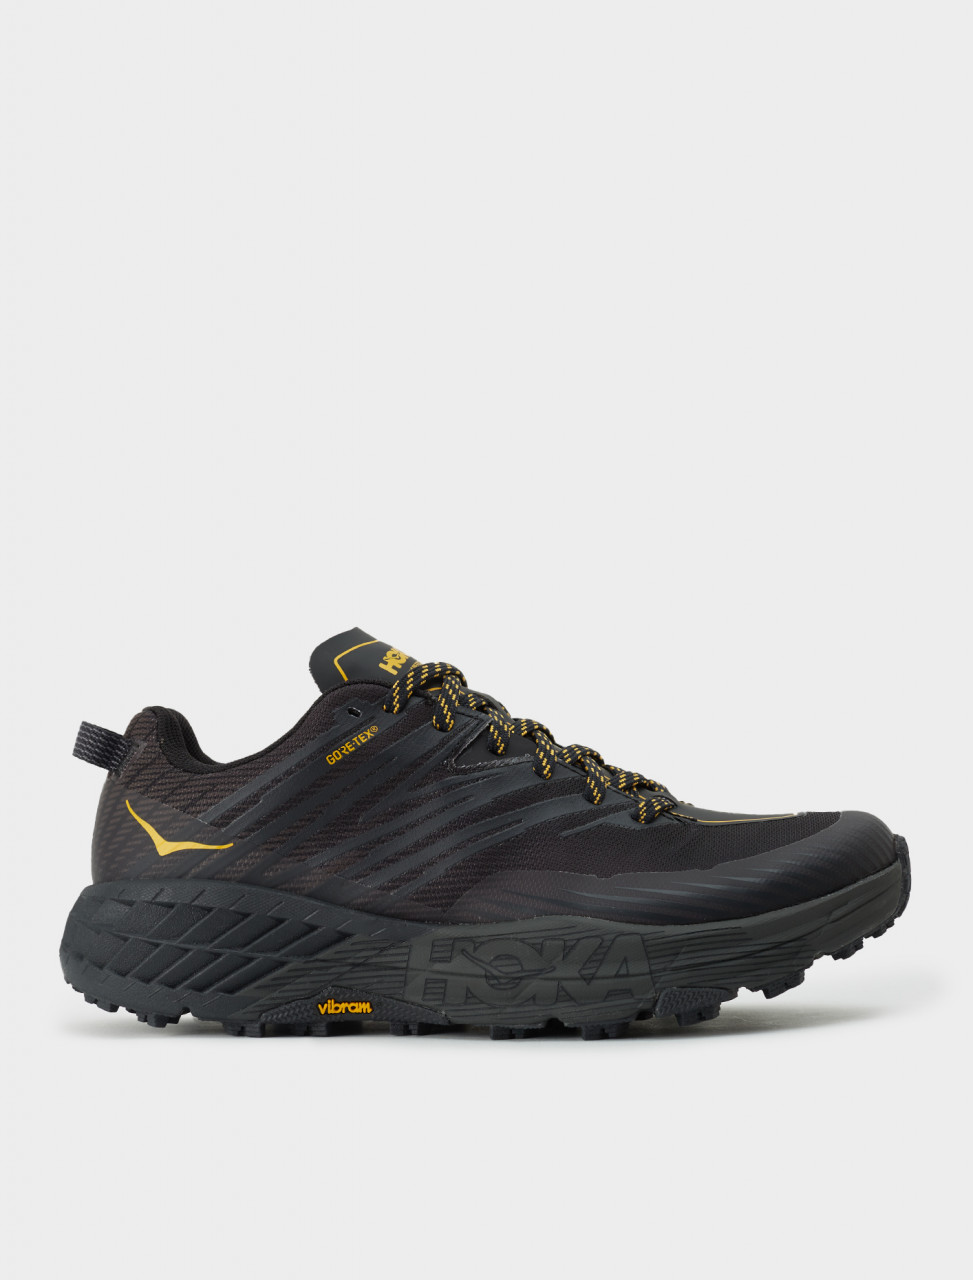 Hoka One One Mens SPEEDGOAT GTX Sneaker in Anthracite/Dark Gull Grey